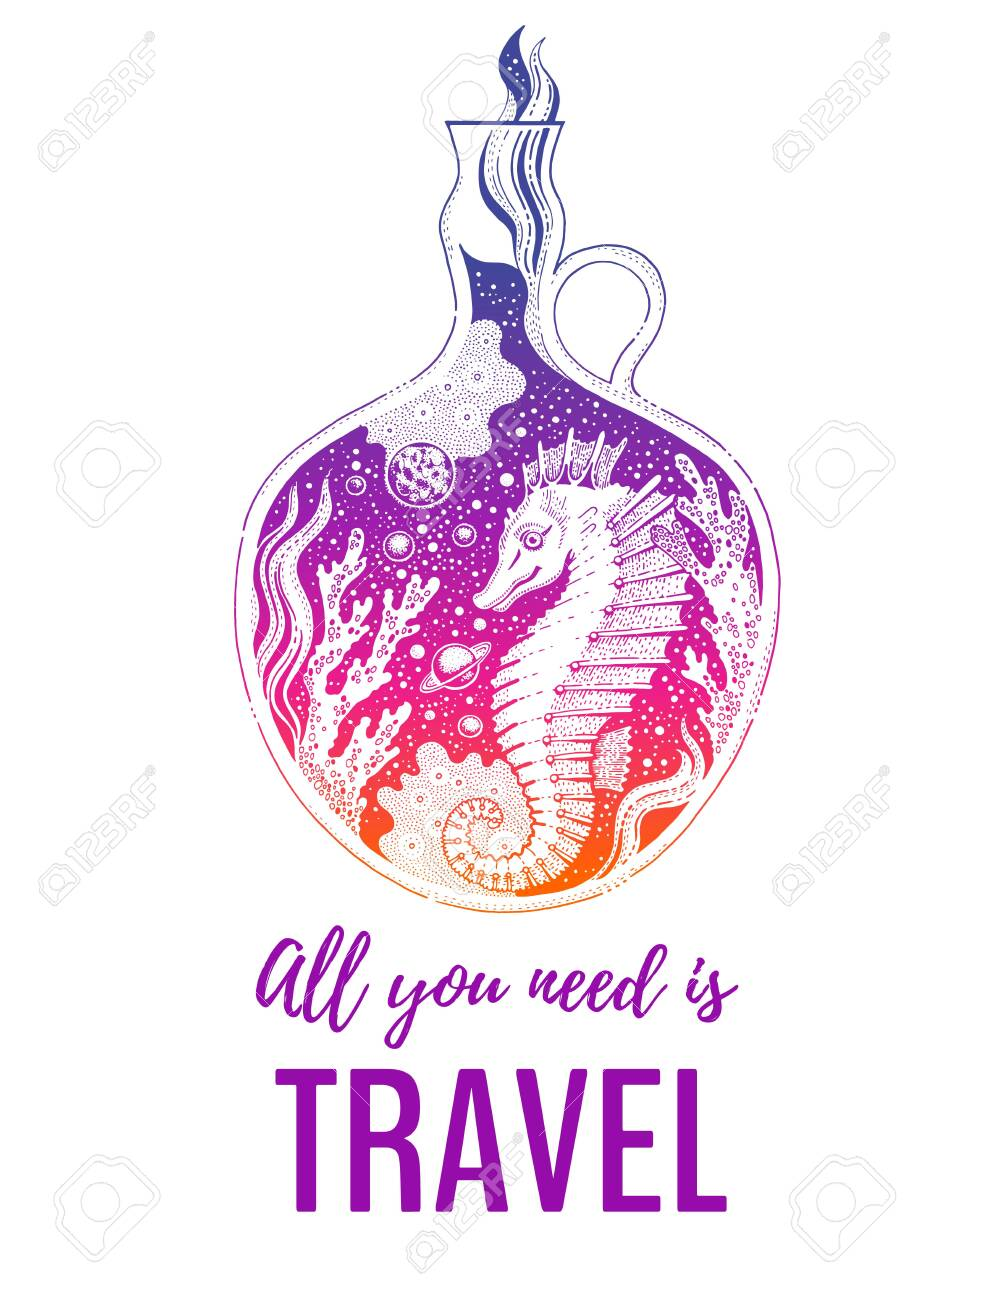 Surreal Sketch Poster Sea Horse Animal Design Concept Vintage Royalty Free Cliparts Vectors And Stock Illustration Image 148400467